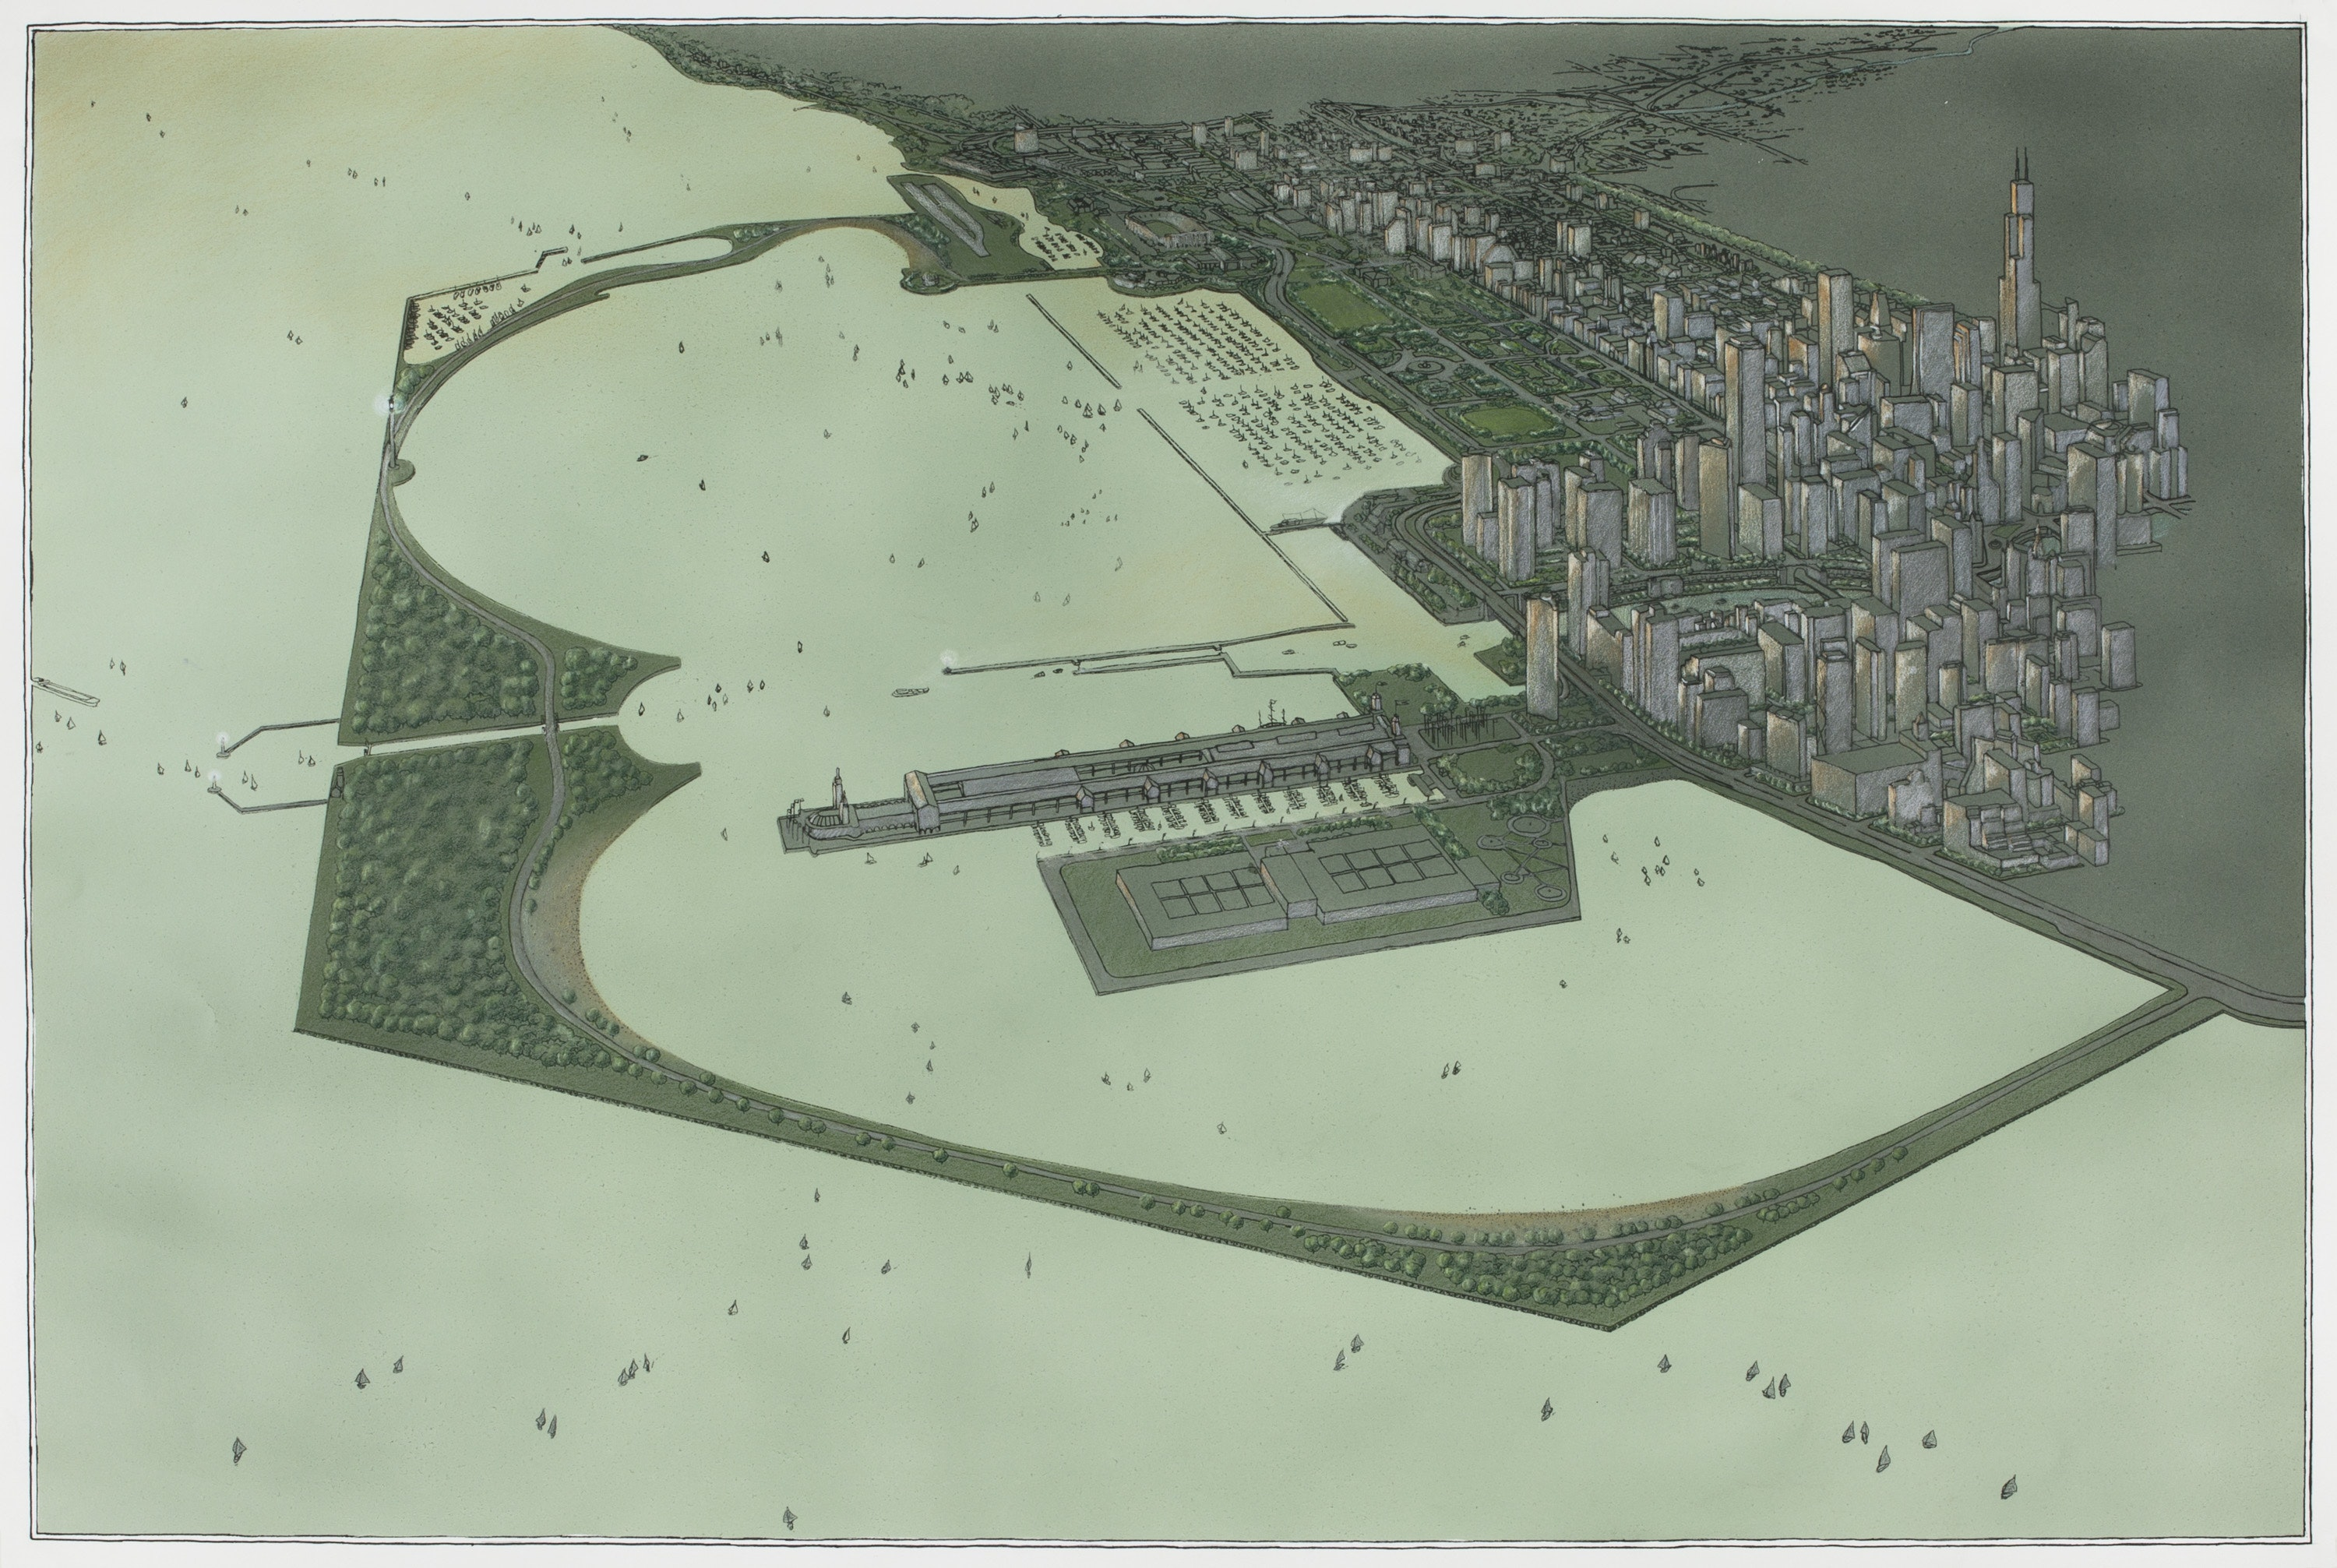 Chicago Lagoon Proposal, Perspective